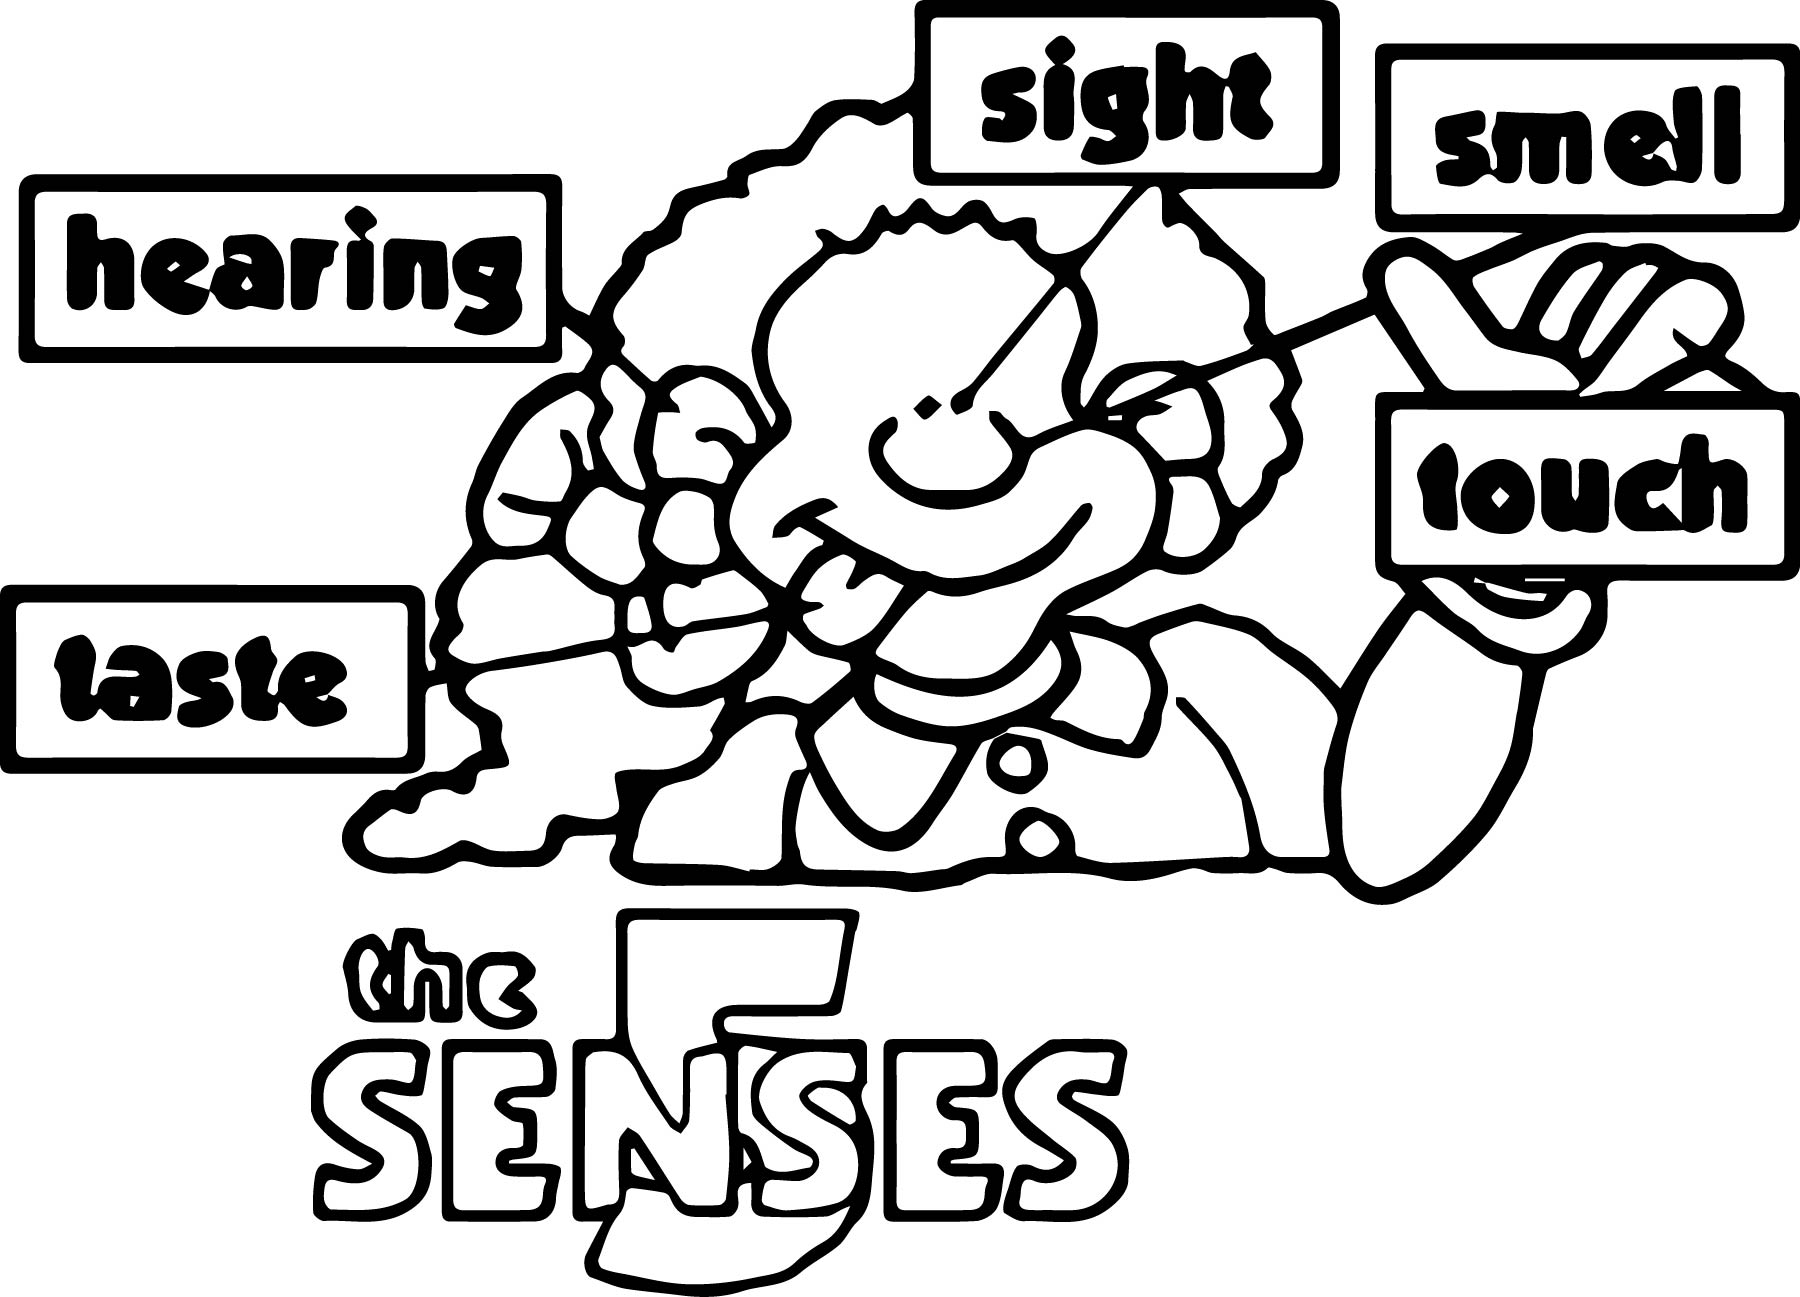 five senses coloring pages free - the 5 senses coloring page